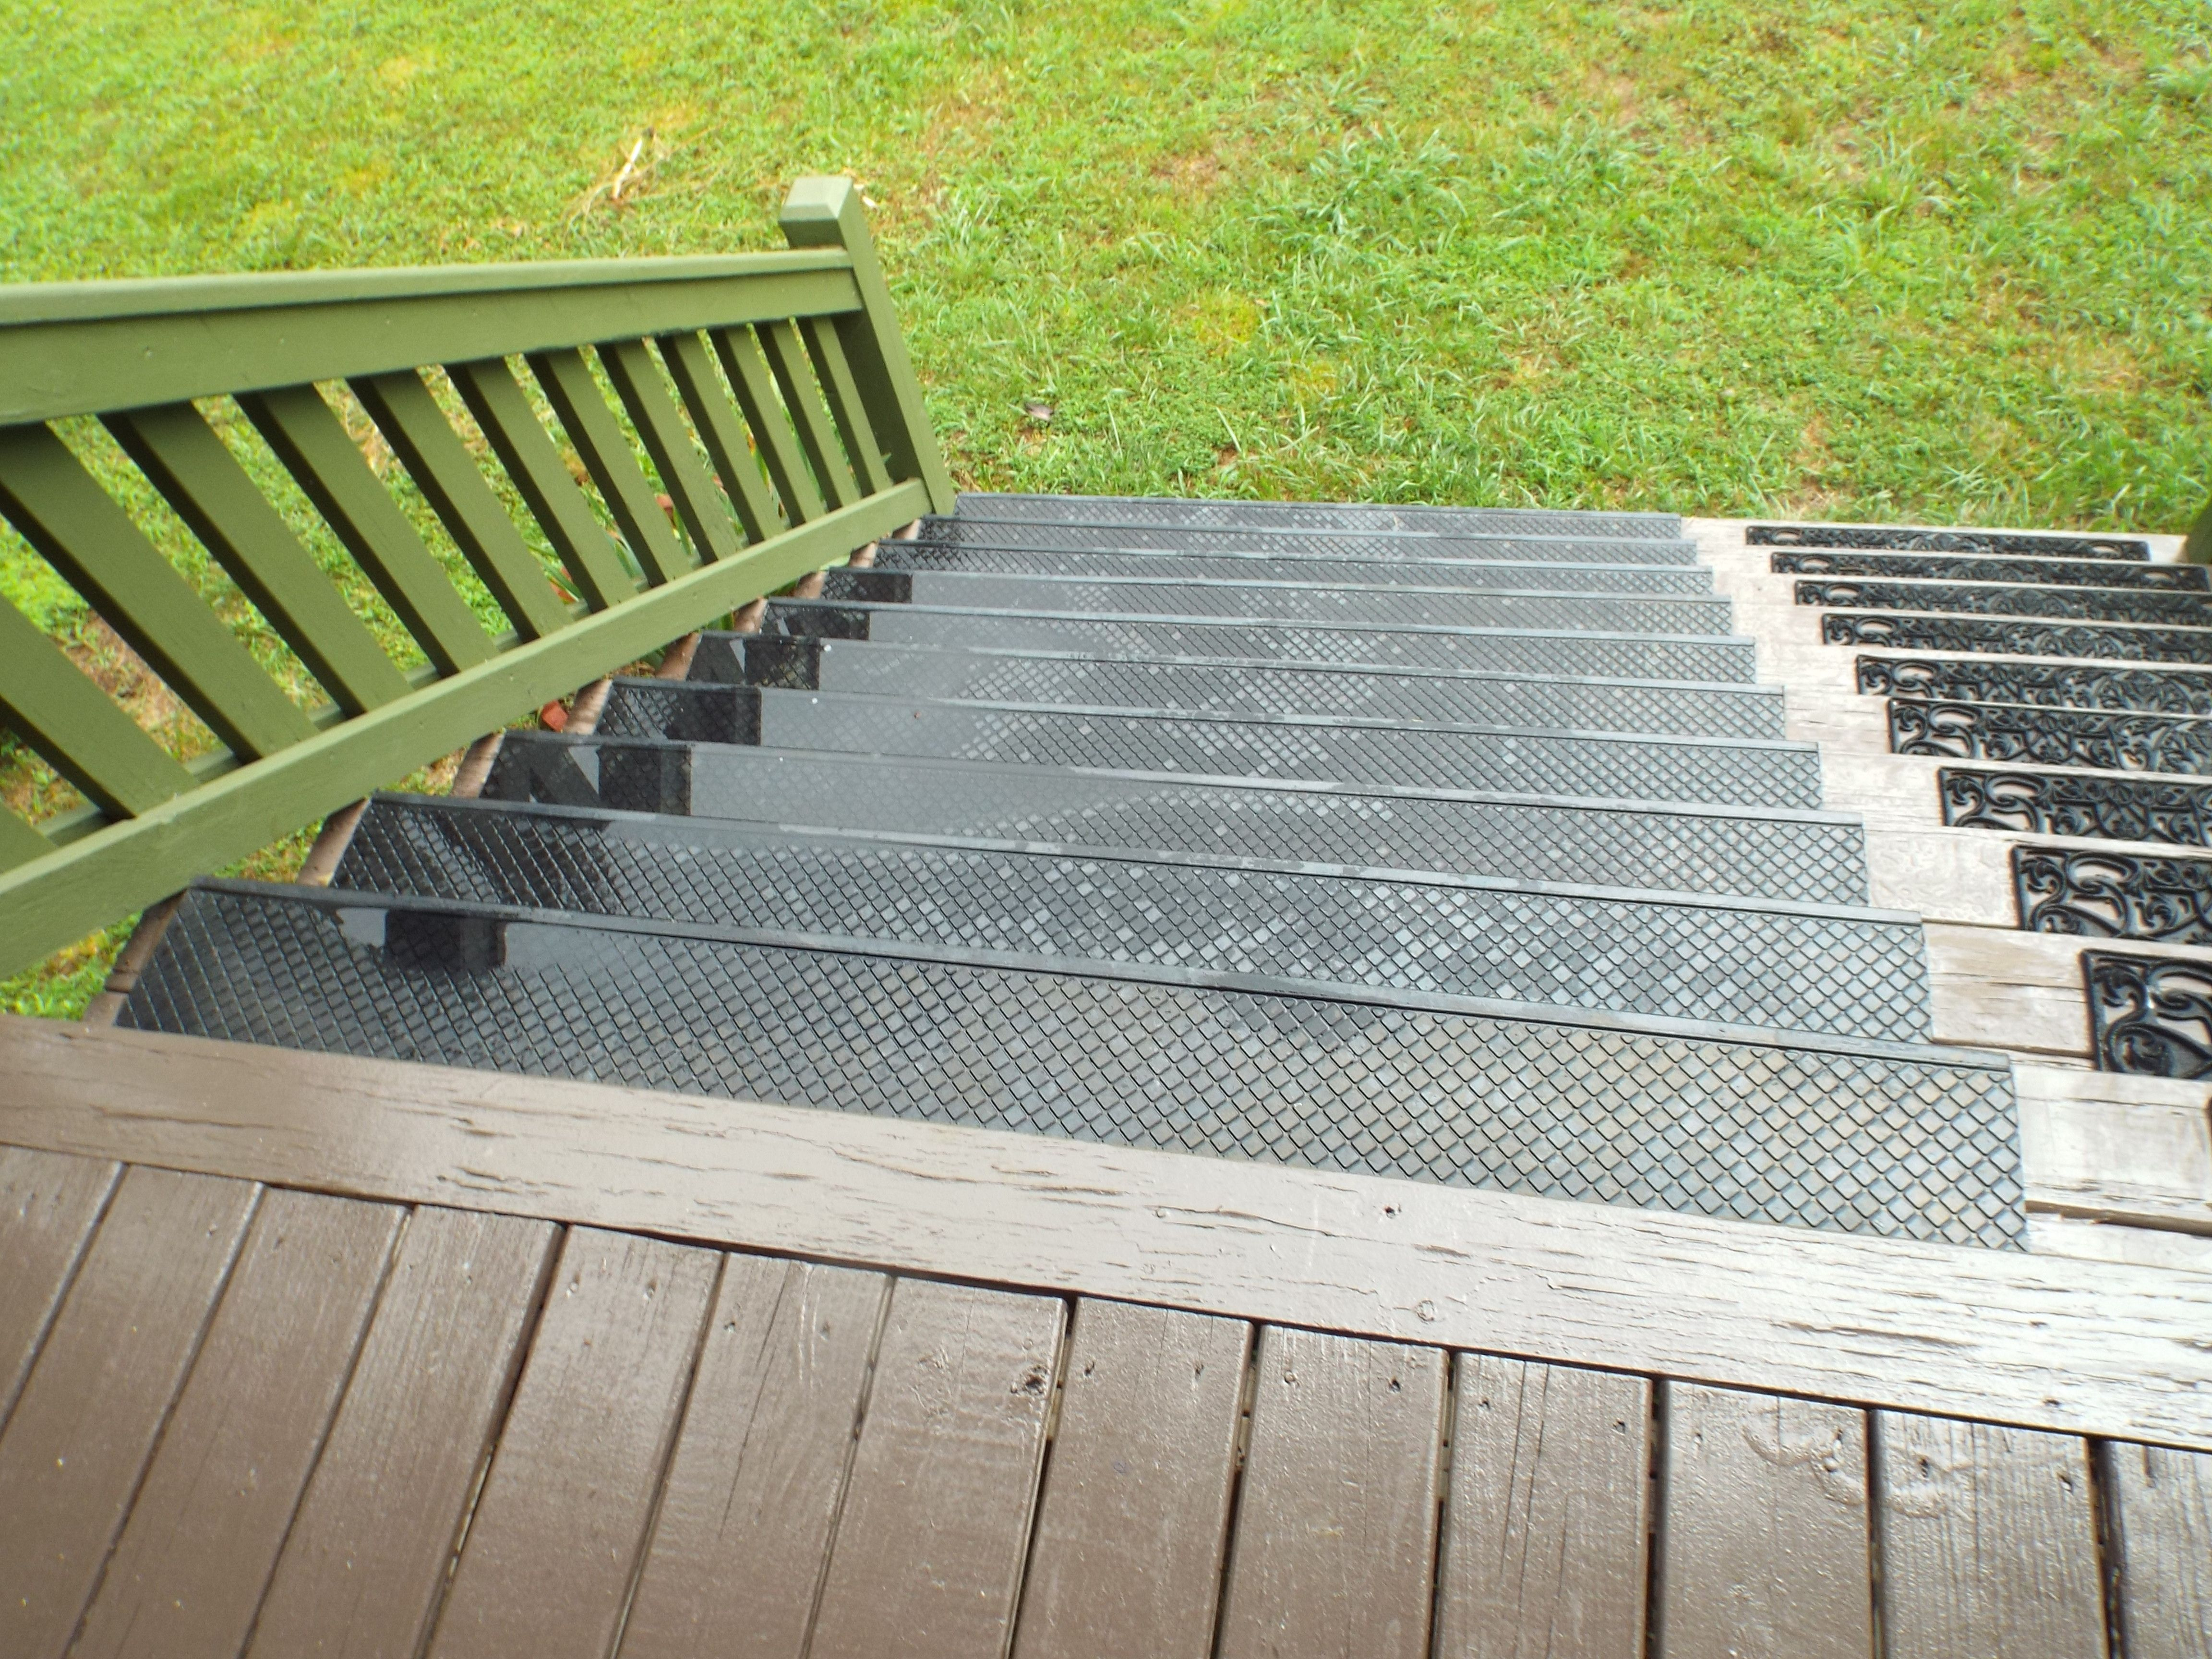 Add Outdoor Stair Treads To Prevent Wood Steps From Getting Worn | Outdoor Deck Stair Treads | Composite Deck | Stringer | Pressure Treated Wood | Stair Stringer | Metal